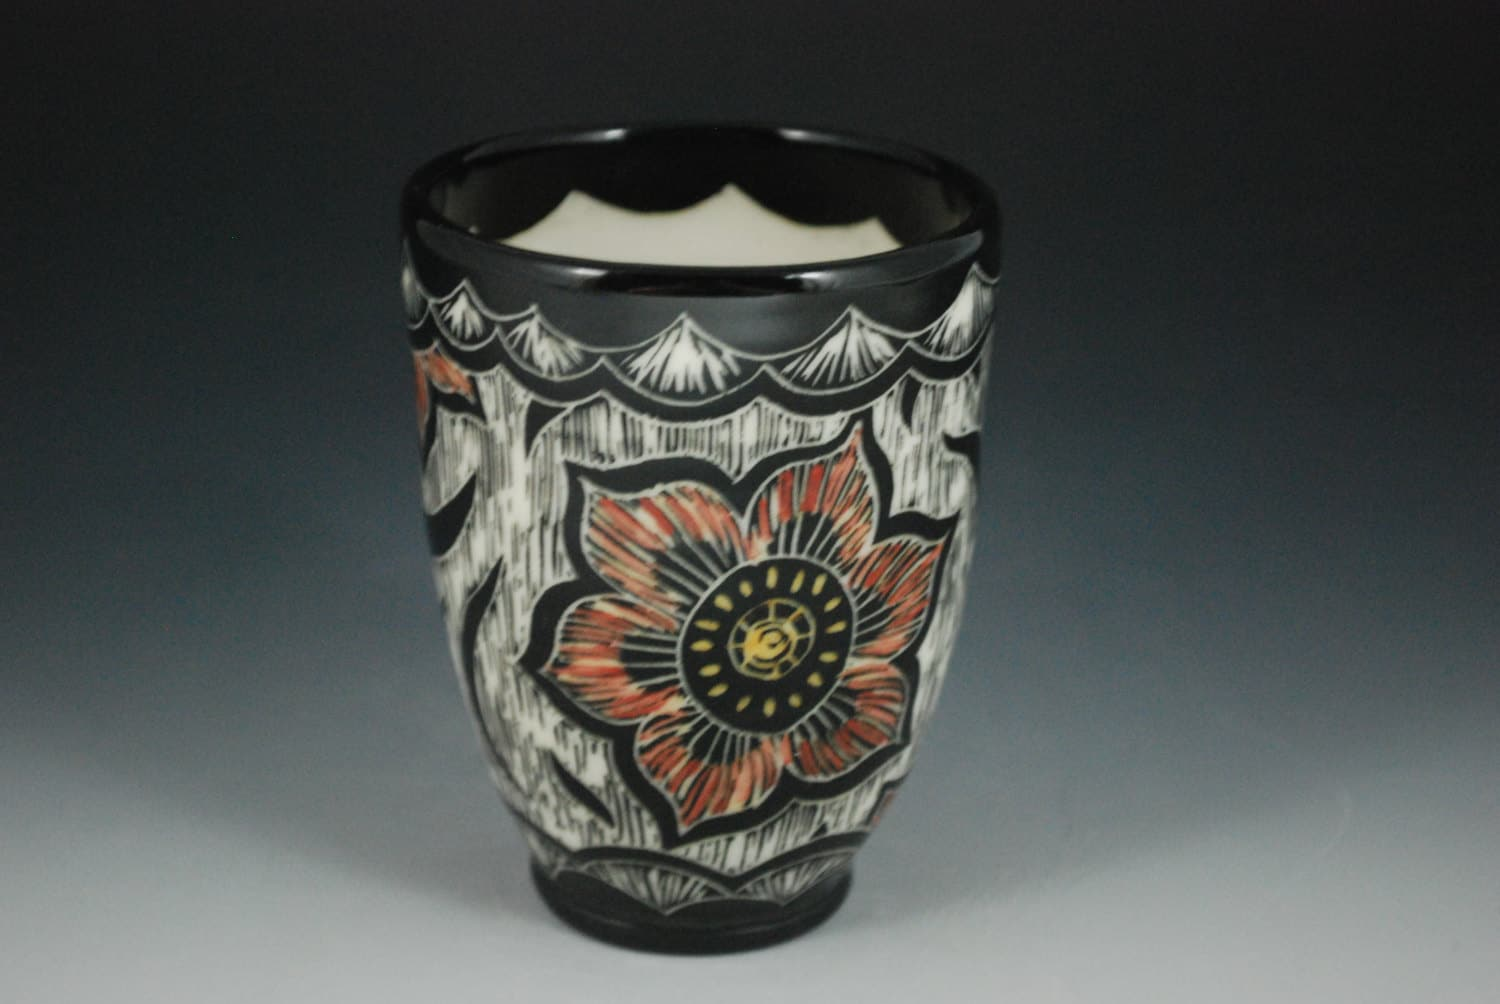 Sgraffito Indian Flower Design Tumbler with Color (Porcelain) - RebeccaAGrantCeramic